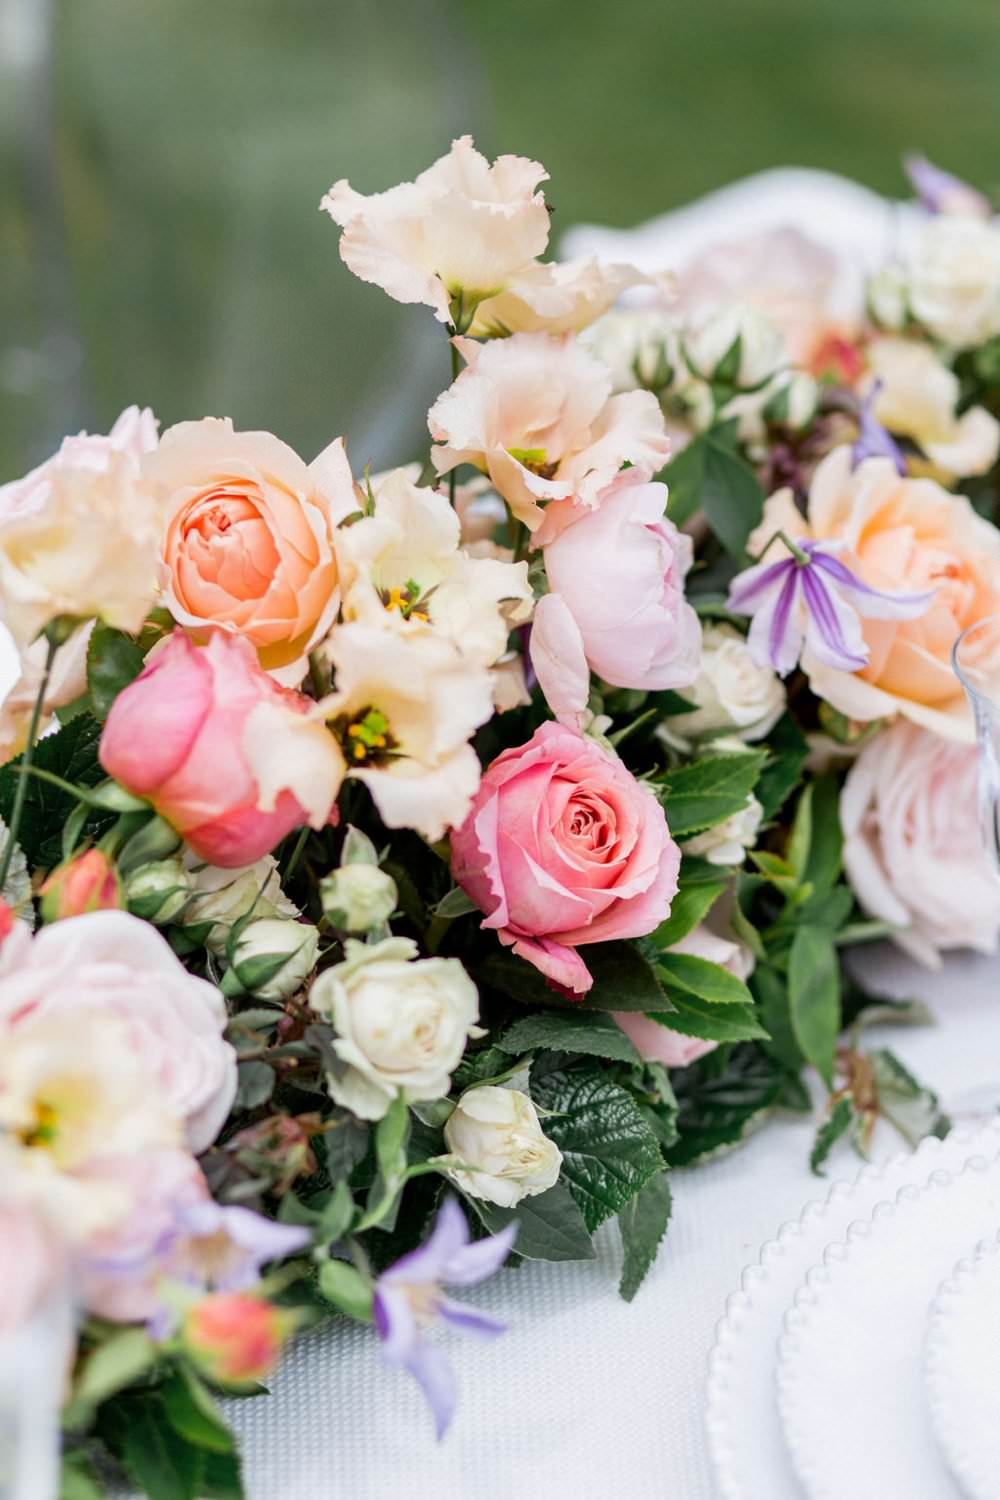 Table Flowers Garland Swag Centrepiece Coral Lilac Rose Peony English Garden Wedding Inspiration Philippa Sian Photography